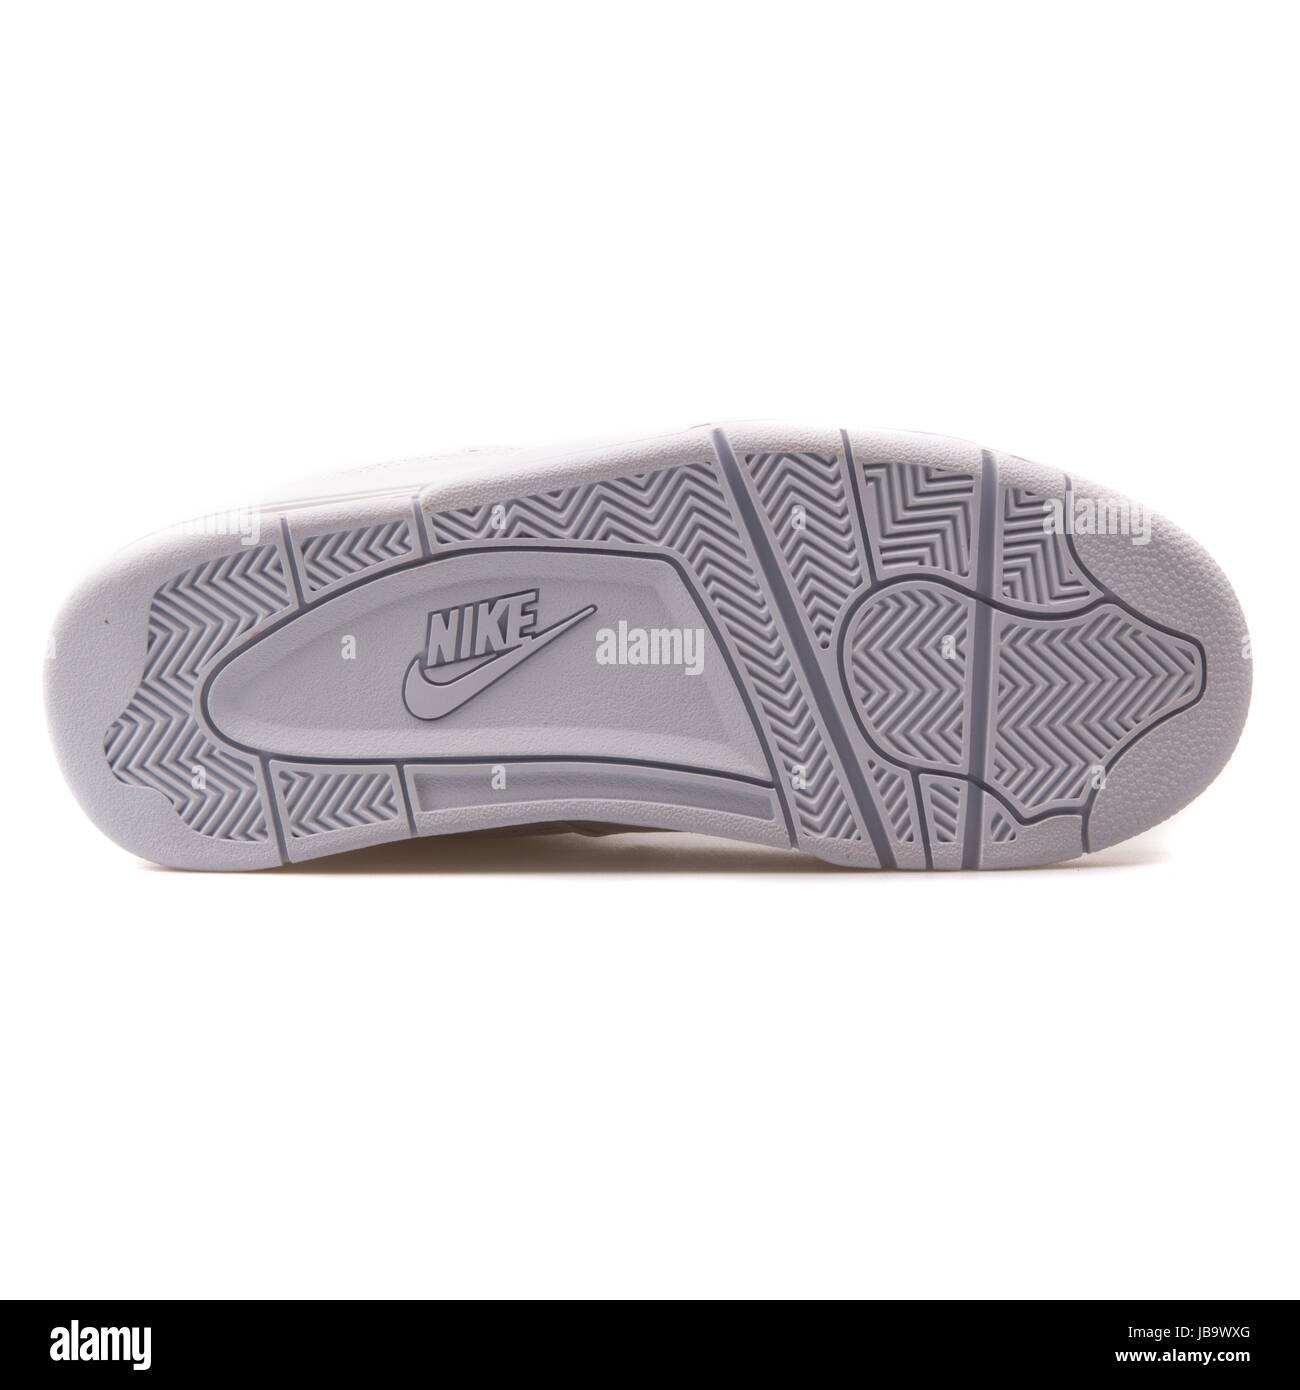 Ambientalista Comida tarde  Nike Air Flight 89 LE QS White Teal Leather Men's Basketball Shoes Stock  Photo - Alamy